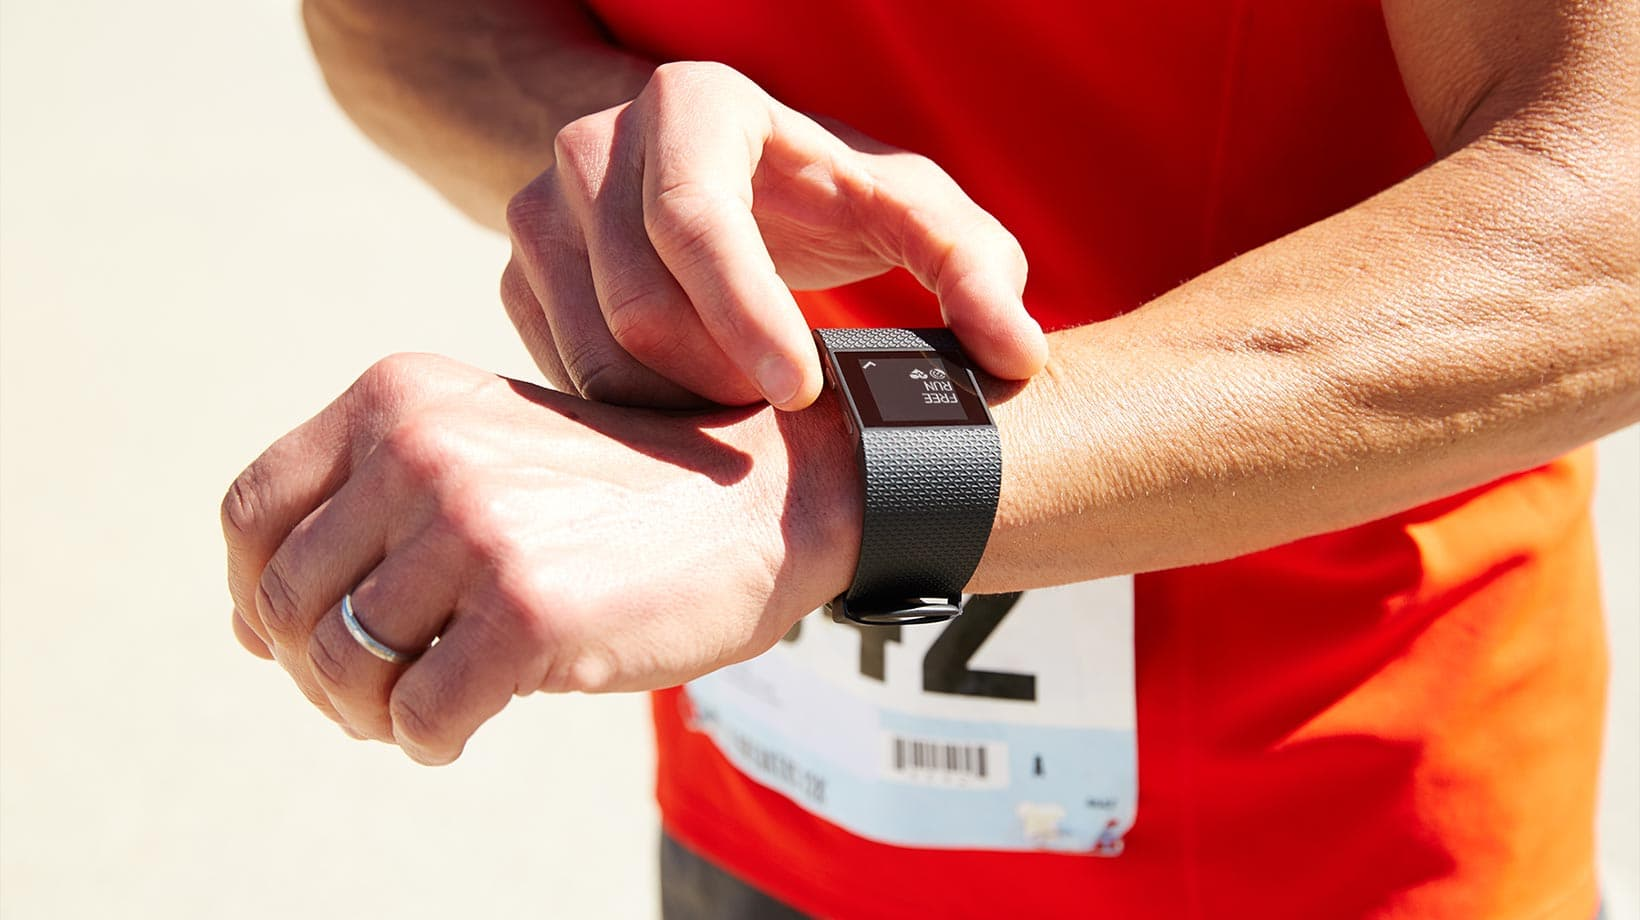 medical-technology-healthcare-wearables wearable technology in healthcare wearable technology for healthcare applications of wearable technology healthcare information technology iot wearables wearable technology market research healthcare it wearable healthcare devices new technology in healthcare industry healthcare and technology wearable technology jobs healthcare wearables wearable technology and healthcare healthcare technology technology used in healthcare technology and healthcare wearable patient monitoring system latest technology in healthcare technology healthcare technology in healthcare wearable device manufacturers impact of technology in healthcare trends in wearable technology health insurance wearables wearable sensor technology technology in healthcare industry benefits of technology in healthcare new technology in healthcare healthcare technology manager medical sensor technology sports wearable technology wearable technology health wearable technology samsung wearable healthcare technology wearable technology of the future technology in healthcare articles wearable technology companies wearable mobile devices wearable technology health and fitness new medical technology wearable technology business wearable technology innovations in healthcare technology in health health monitoring devices wearable news future of wearable technology wearable sensor devices wearables industry wearable medical devices market wearable health technology wearable technology sales wearable health monitoring devices medical wearable devices wearable tracking devices in healthcare wellness wearables smart technology in healthcare wearable technology in sports mobile wearables wearable technology manufacturers wearables health insurance wearable technology conference wearables market wearable technology articles types of wearable technology advances in medical technology wearable technology fashion show wearable health tech devices what is wearable technology wearable sp